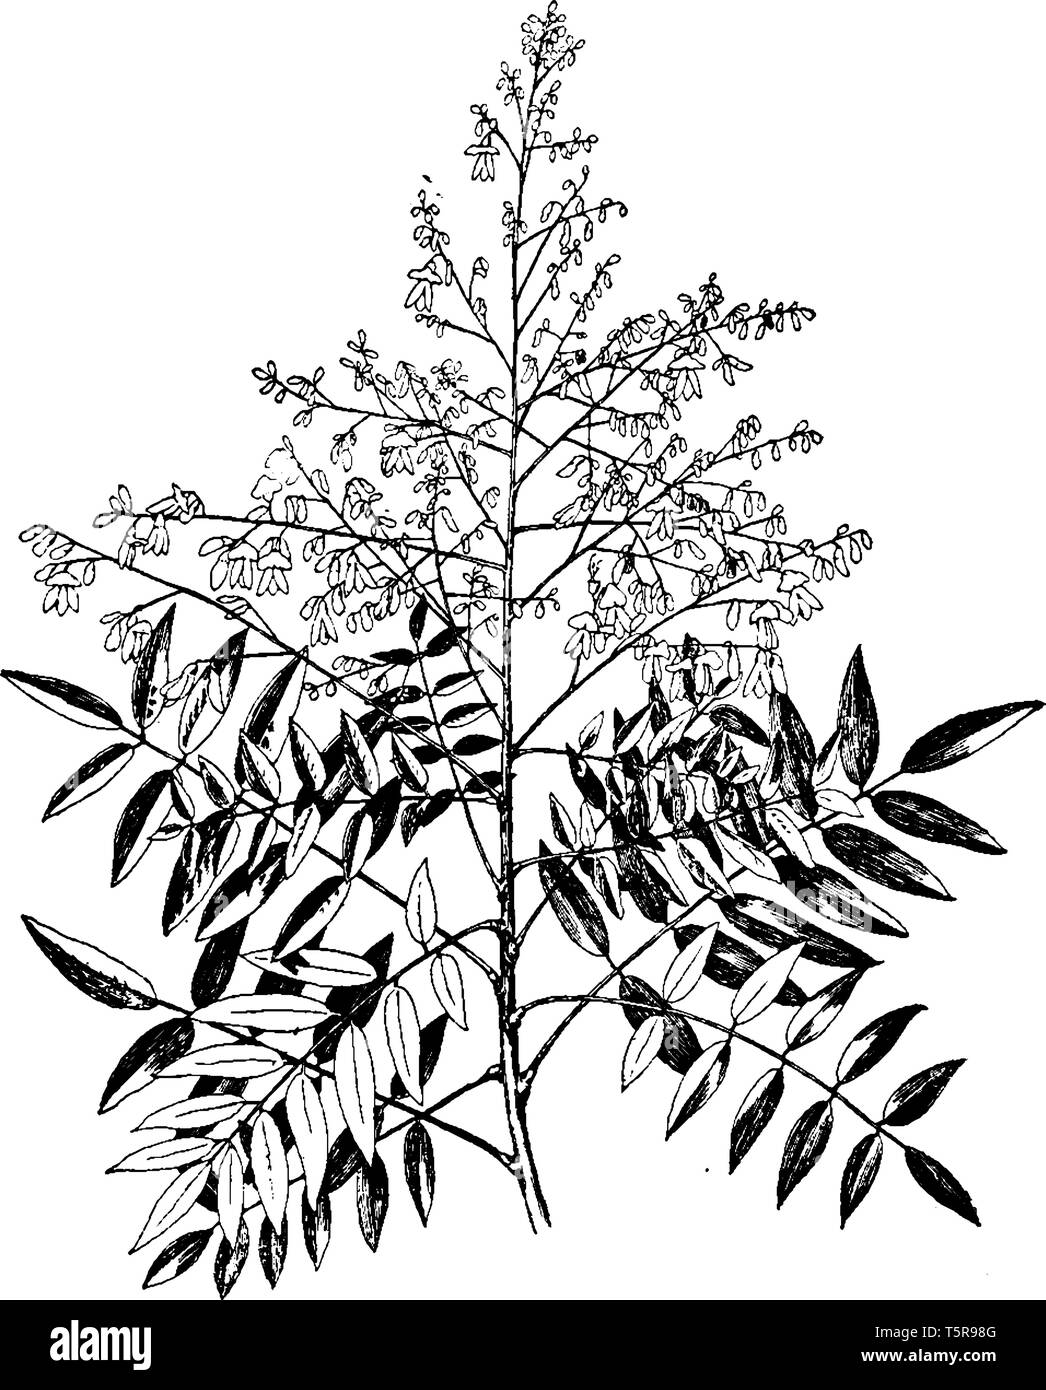 Sophora japonica is a genus of tree, also called Japanese pagoda tree or Chinese scholar tree, and is native to China and Korea. The leaves of the tre - Stock Vector